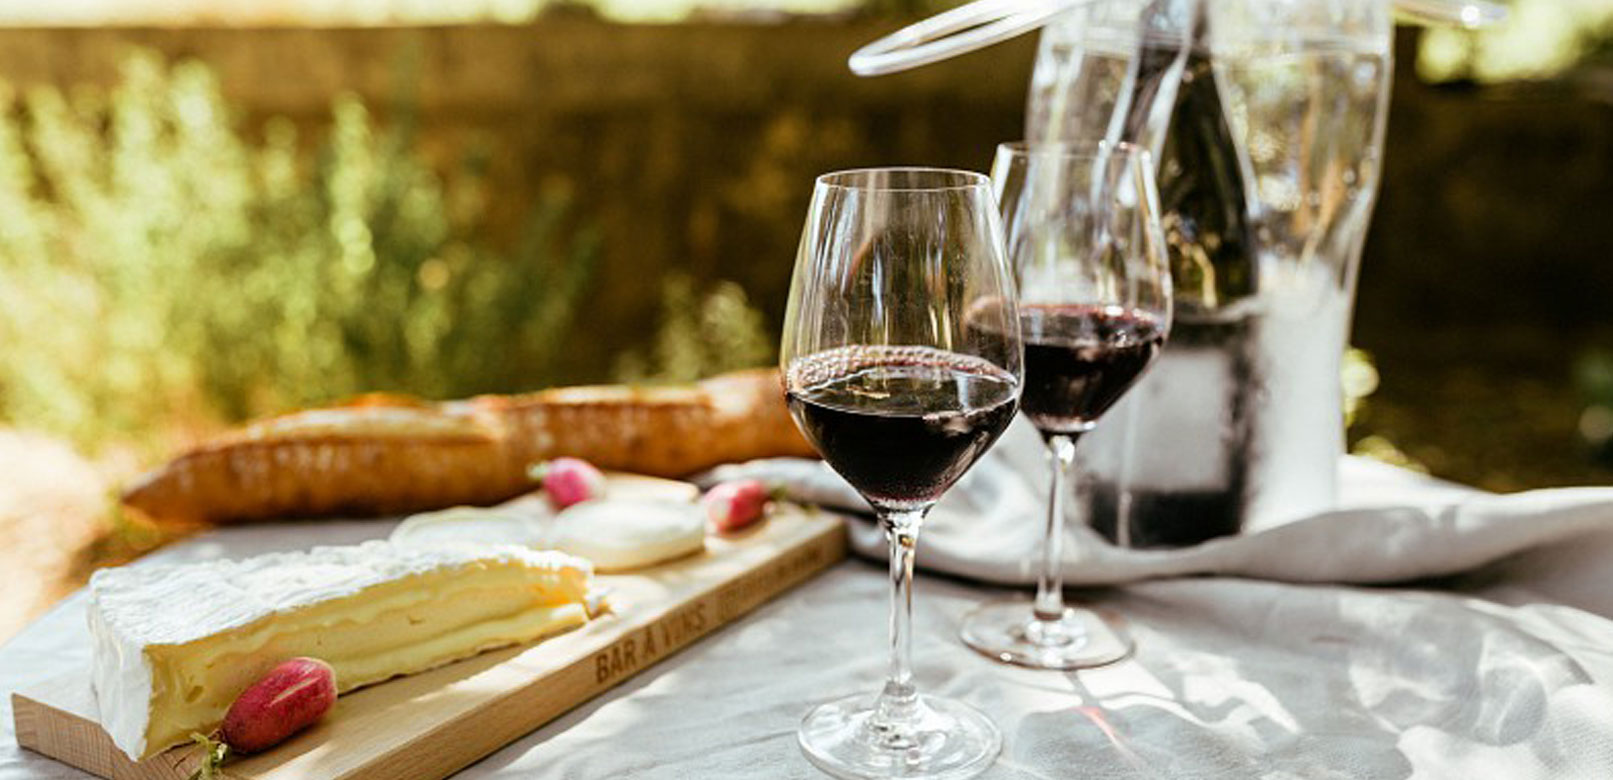 Picnic and dine with a winemaker © Meffre